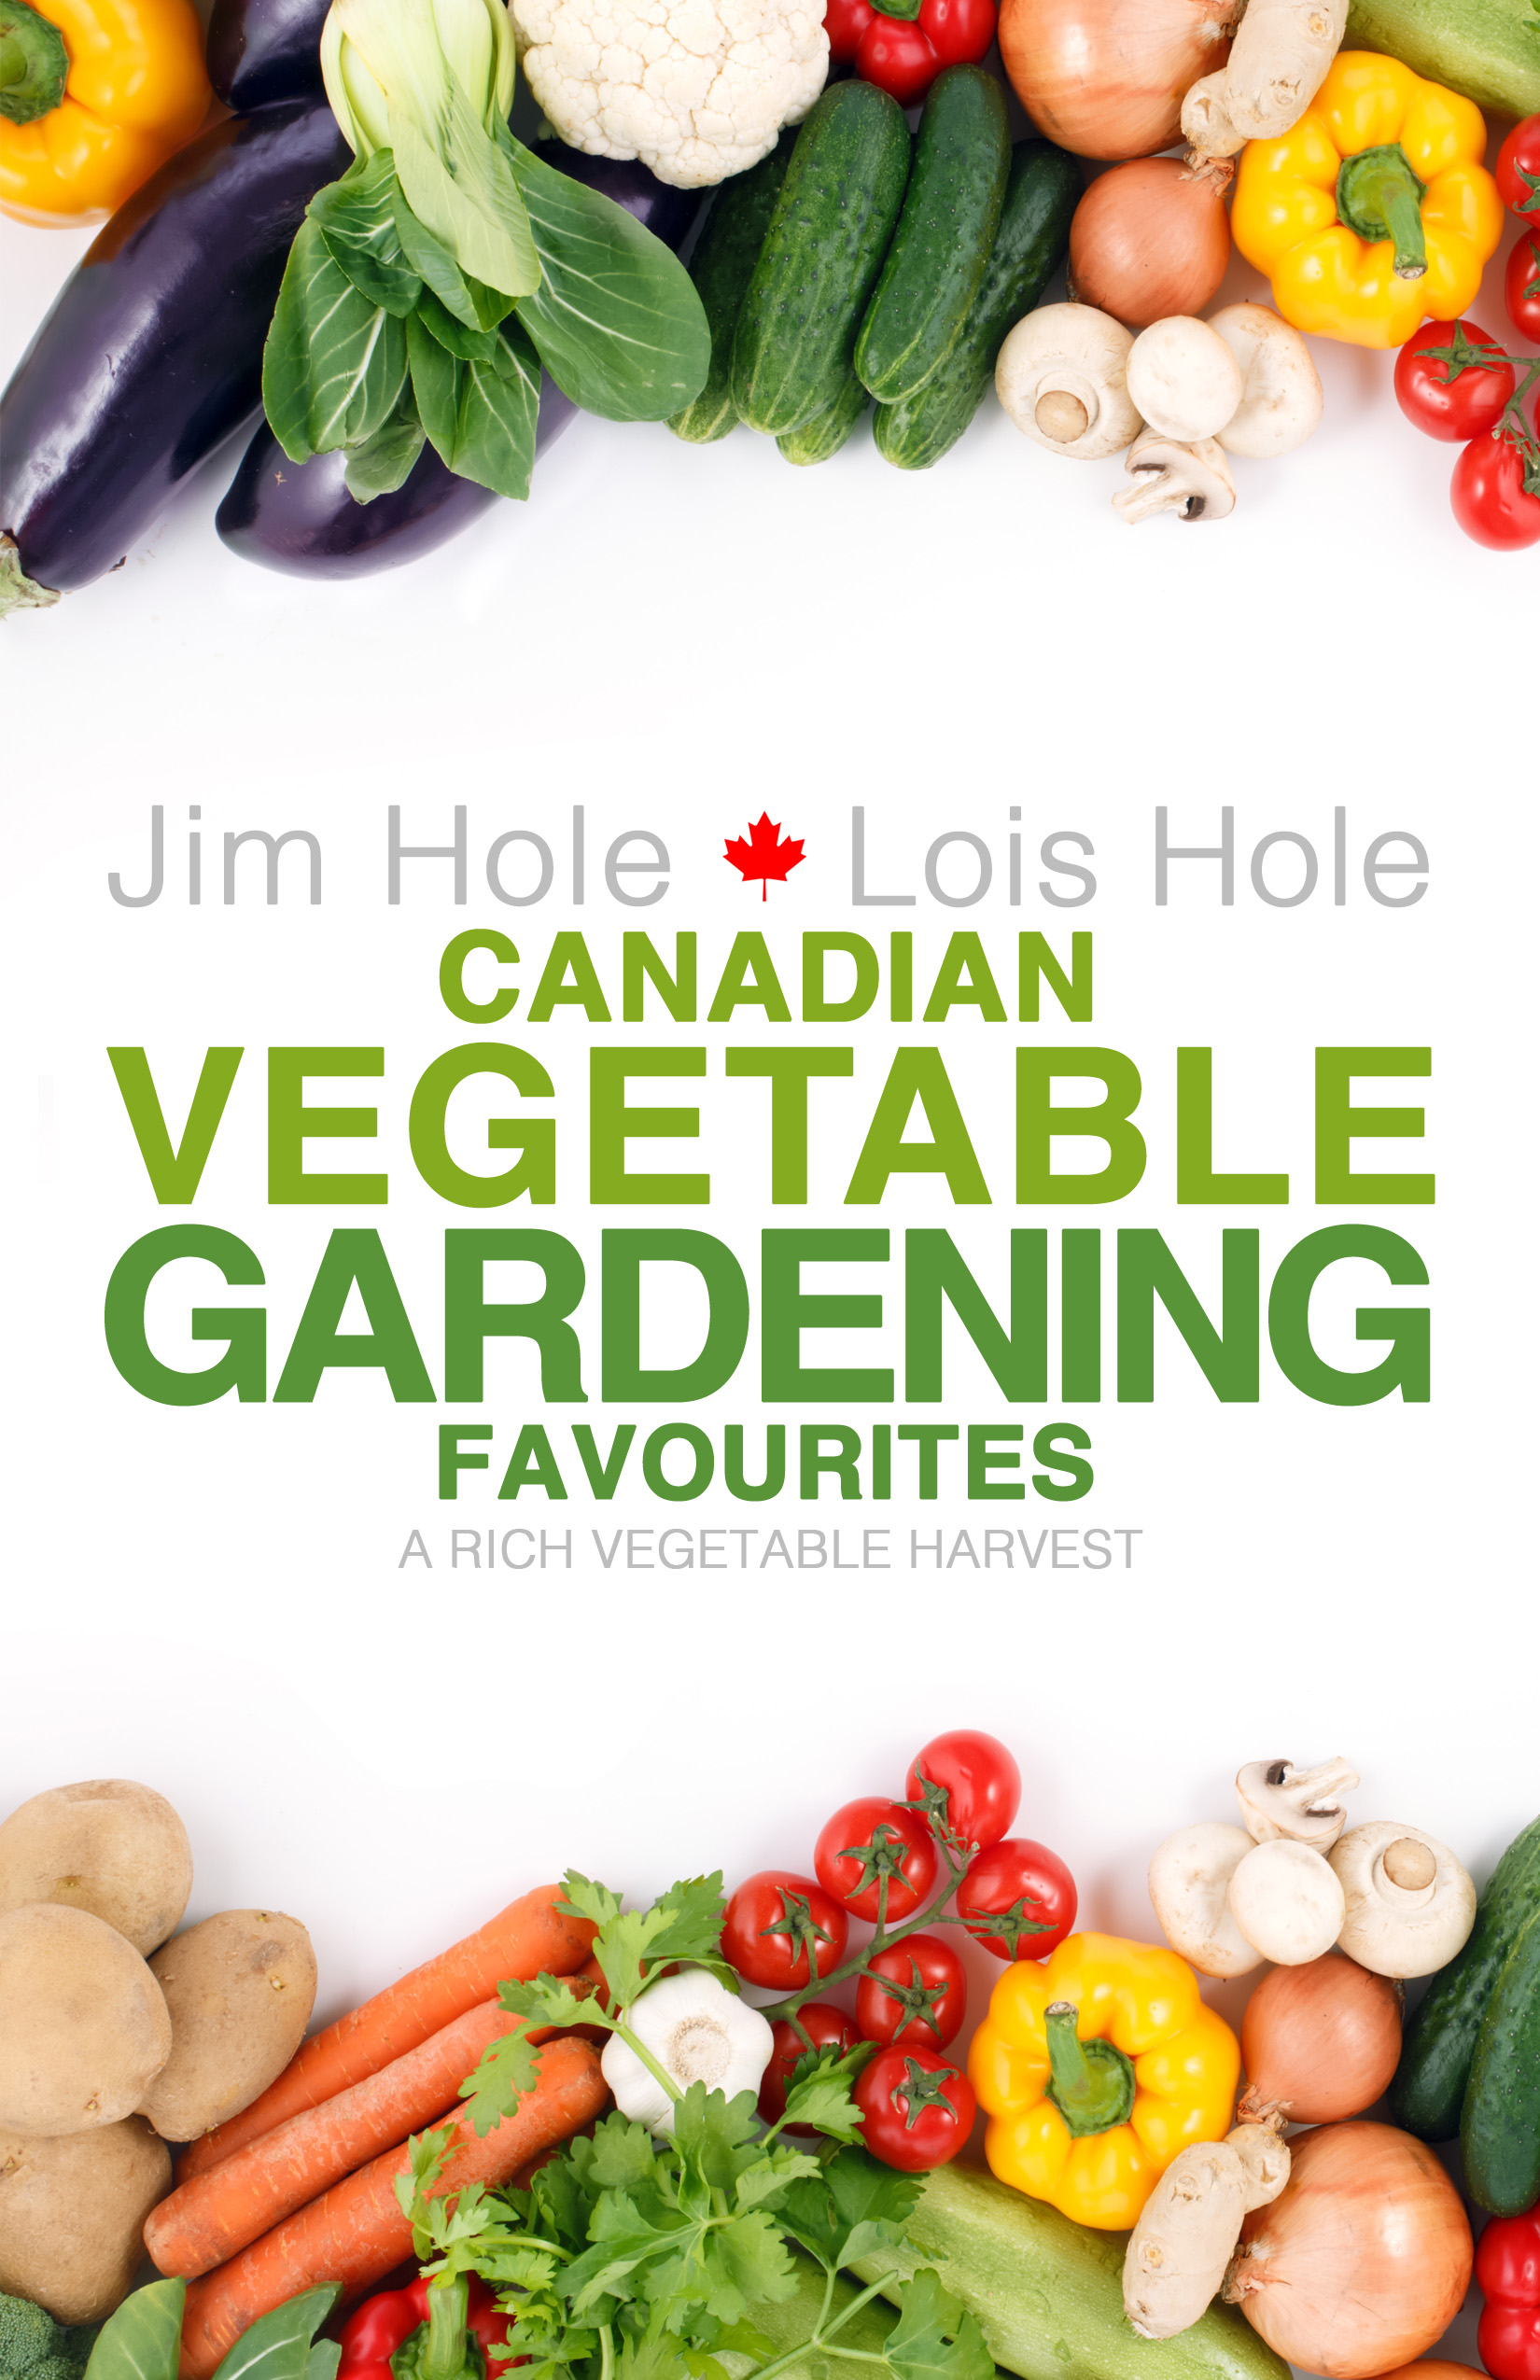 canadian-vegetable-gardening-favourites-alberta-lois-hole